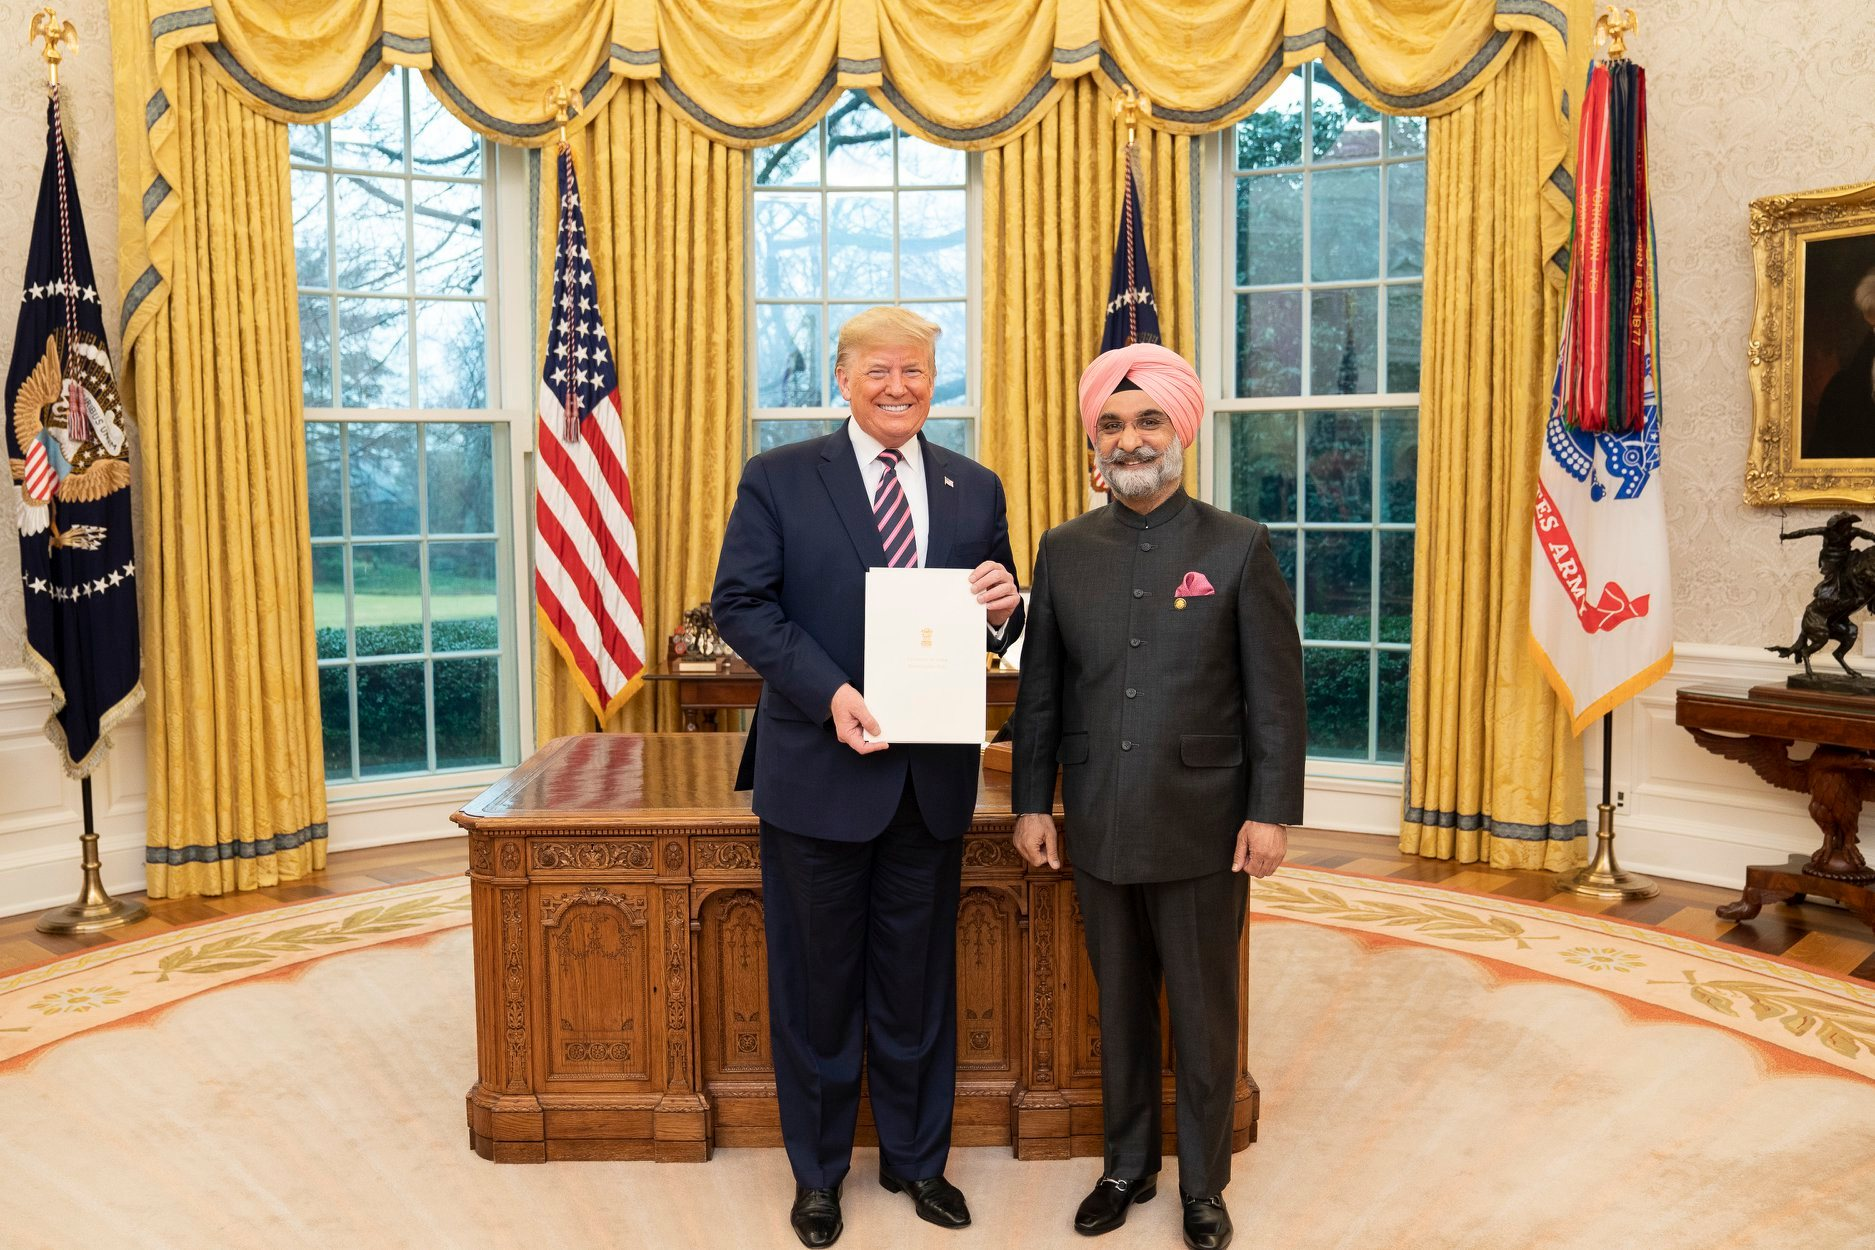 Ambassador Sandhu conveyed the greetings from the President and PM of India to President Trump and the First Lady. ​